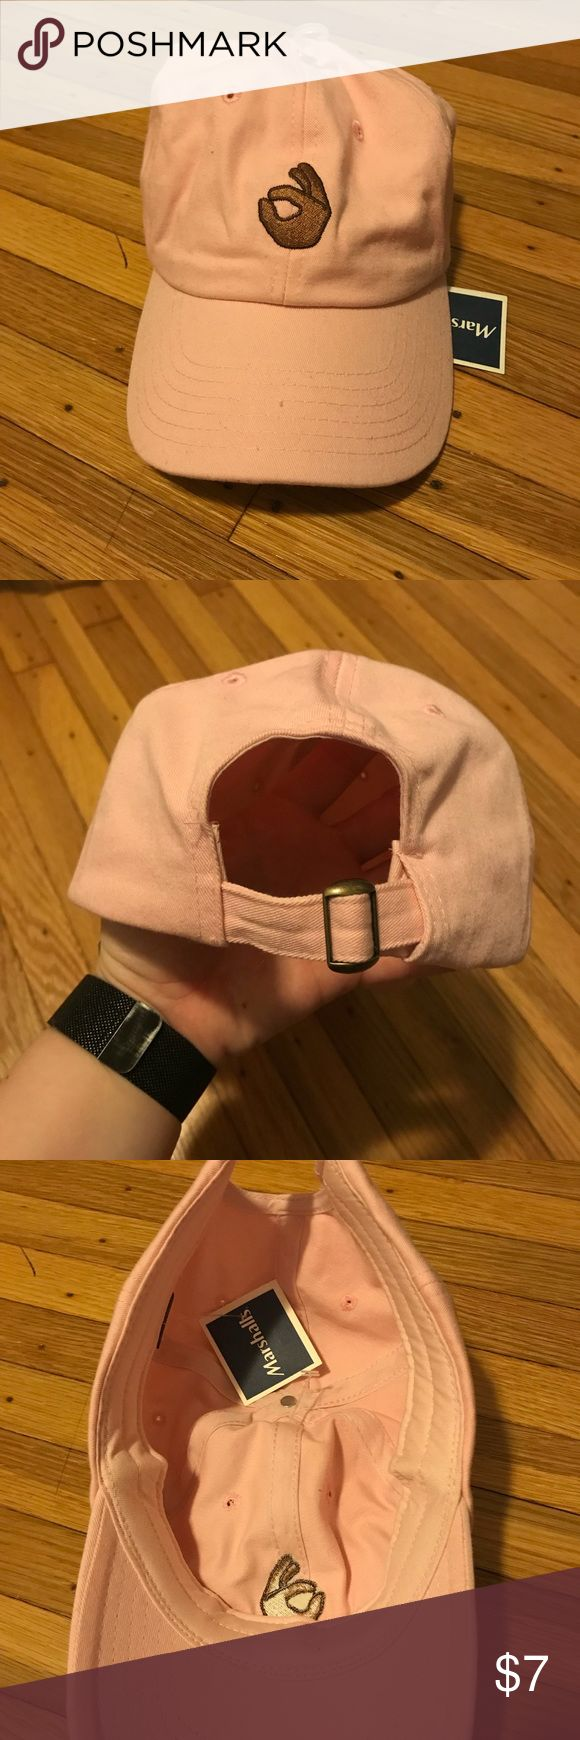 Emoji Hat NWT. This hat is pink with a hand emoji on it. The back is adjustable to size. Accessories Hats